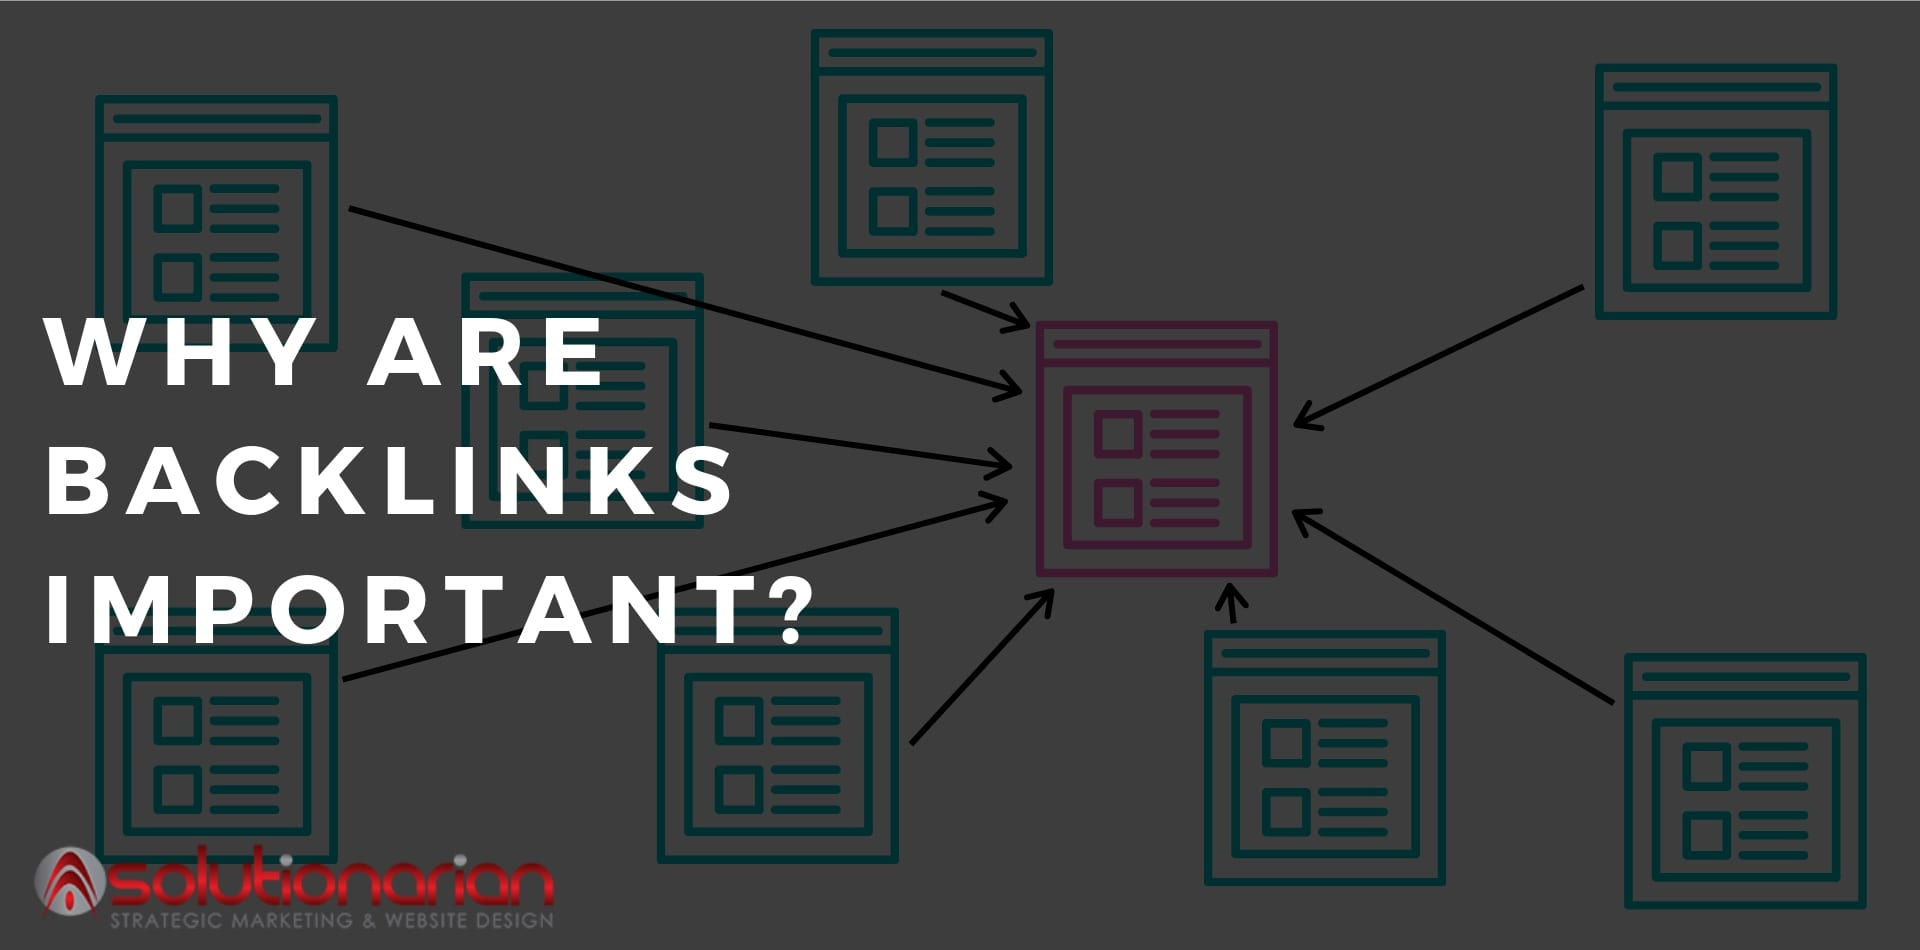 Why Are Backlinks Important